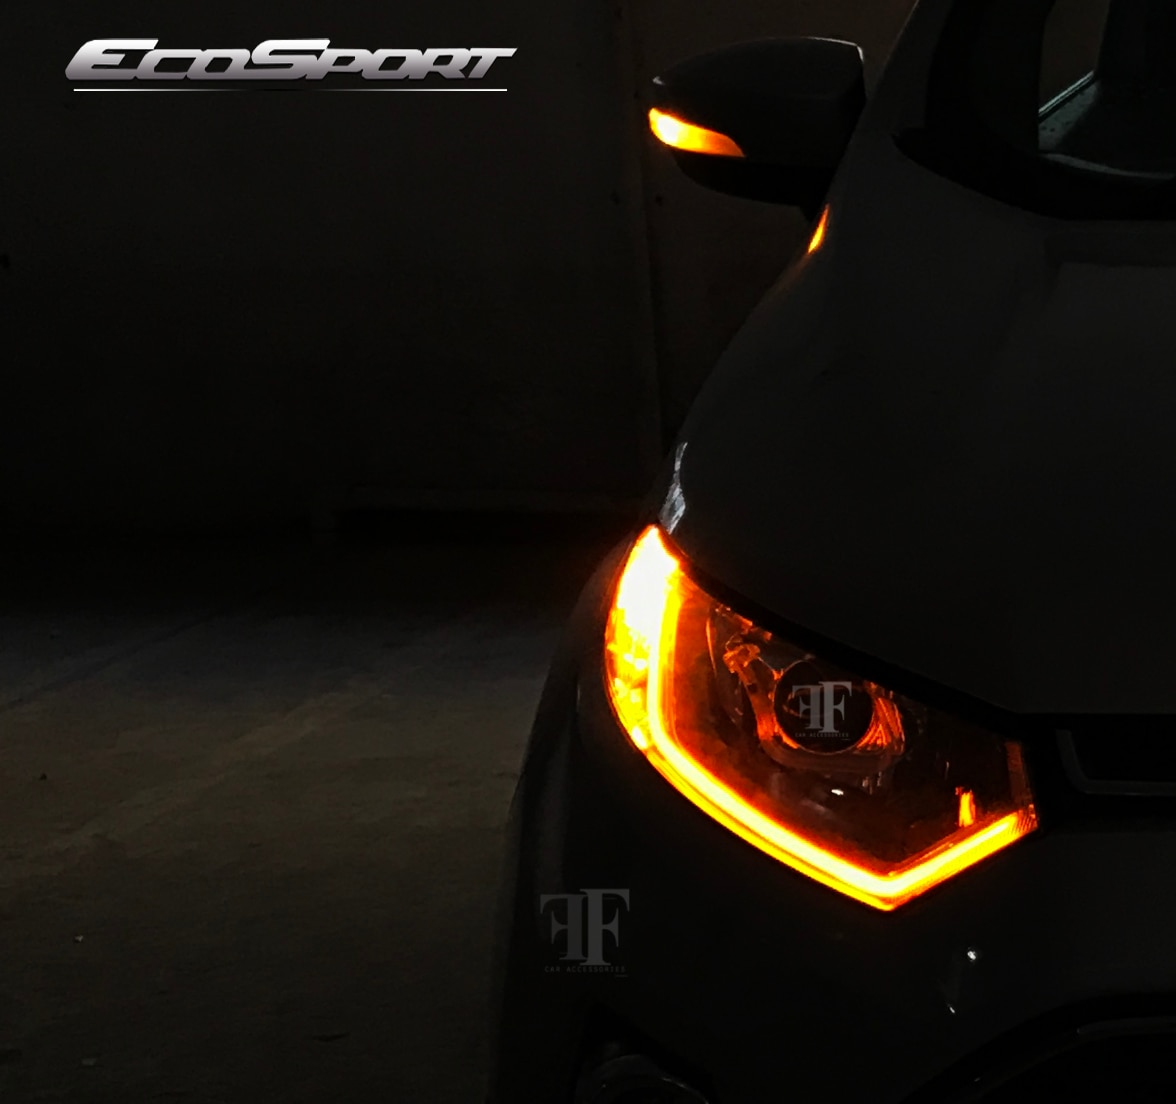 DRL customisation for any car best possible and suitable way with professional installation both tube type and LED type at affordable cost please visit ff car accessories for further details please call 9840409010